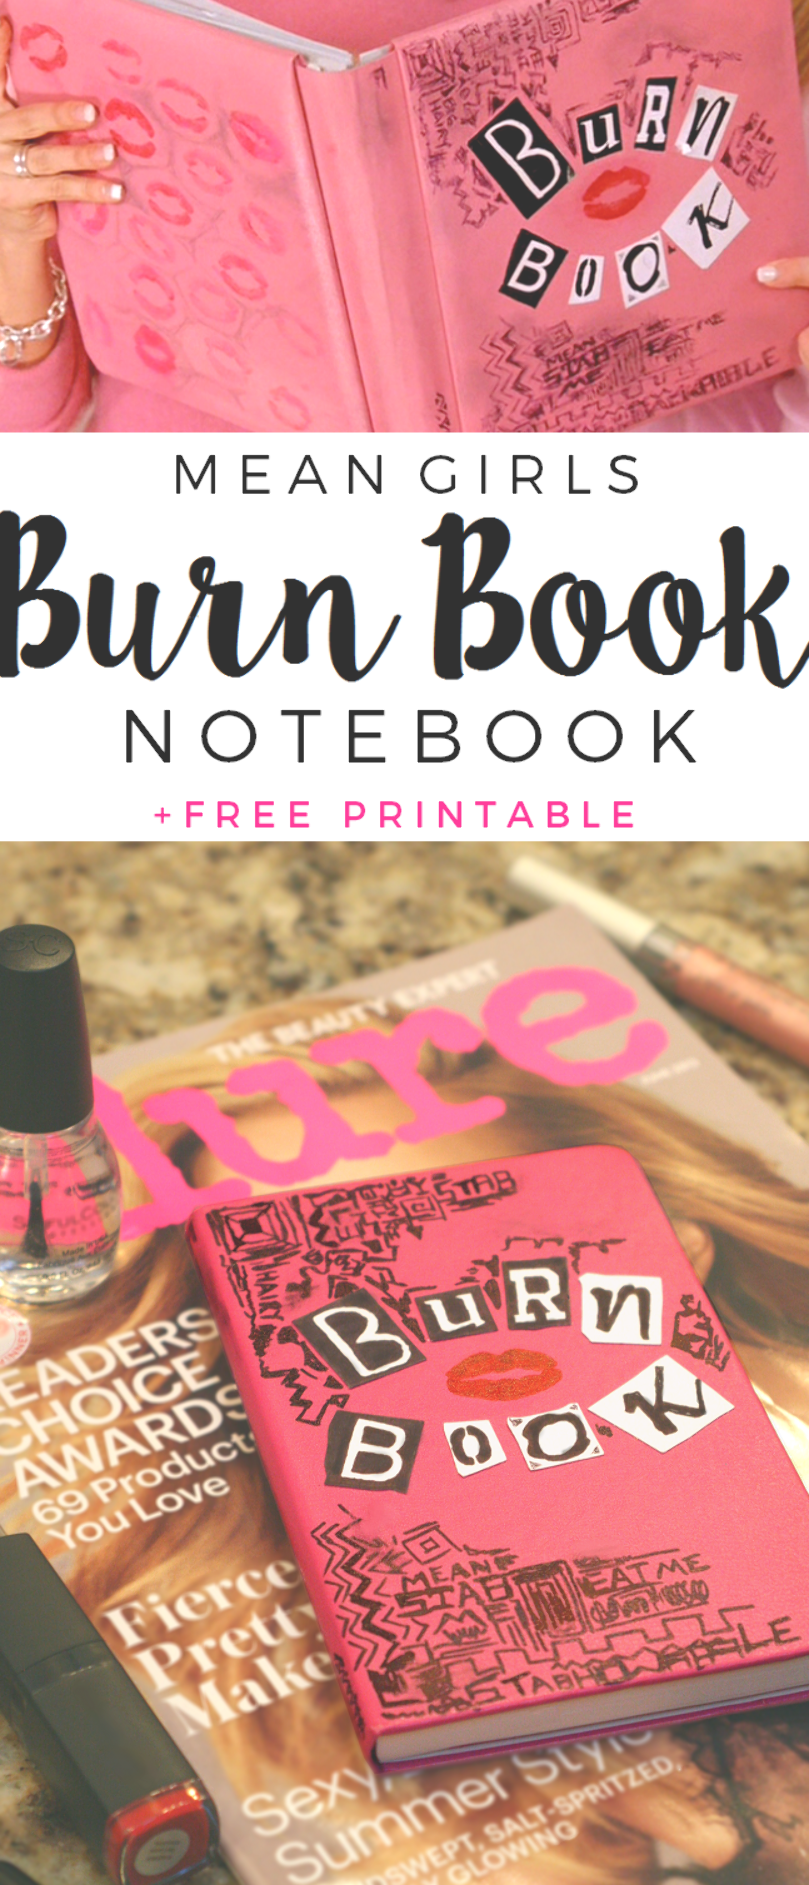 Diy Mean Girls Burn Book Notebook Planner Free Printable For The Letters The Glitter In My Tea For Mean Girls Burn Book Easy Arts And Crafts Diy For Teens